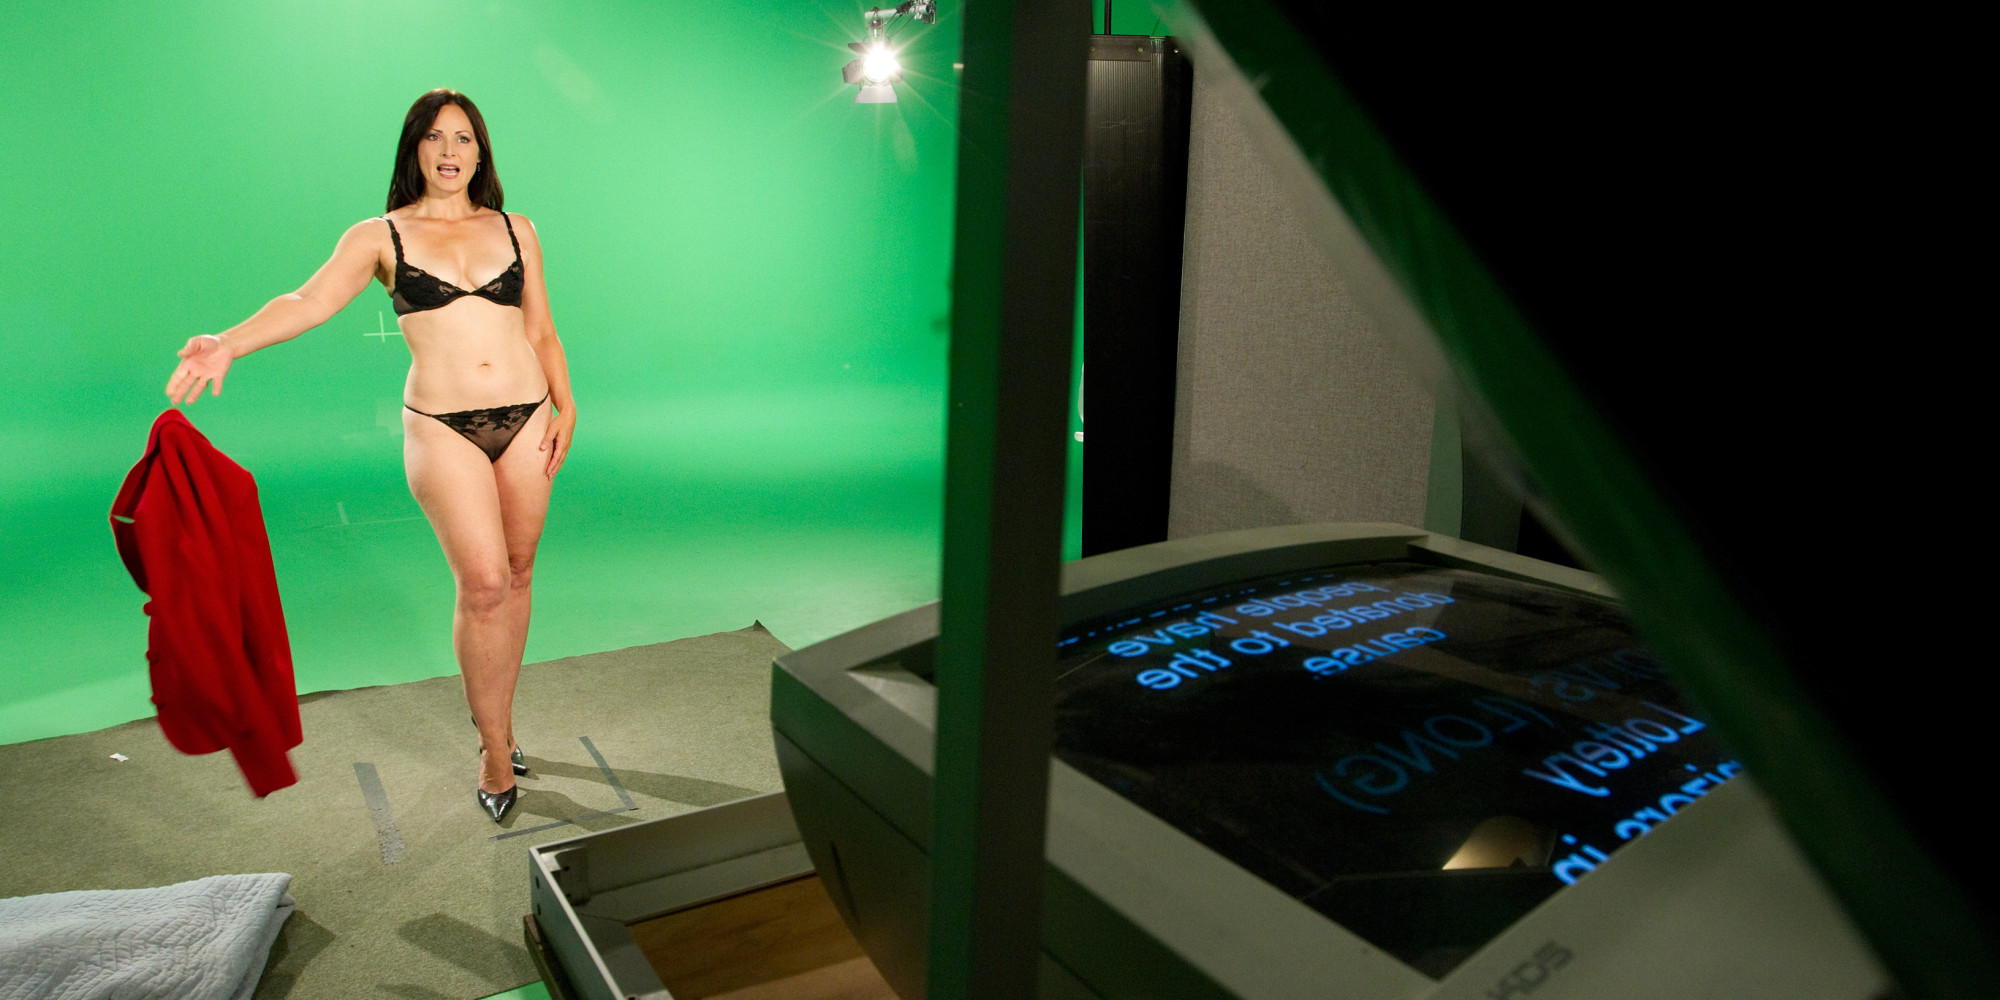 Celeb From Naked News Sinclair Victoria Scenes